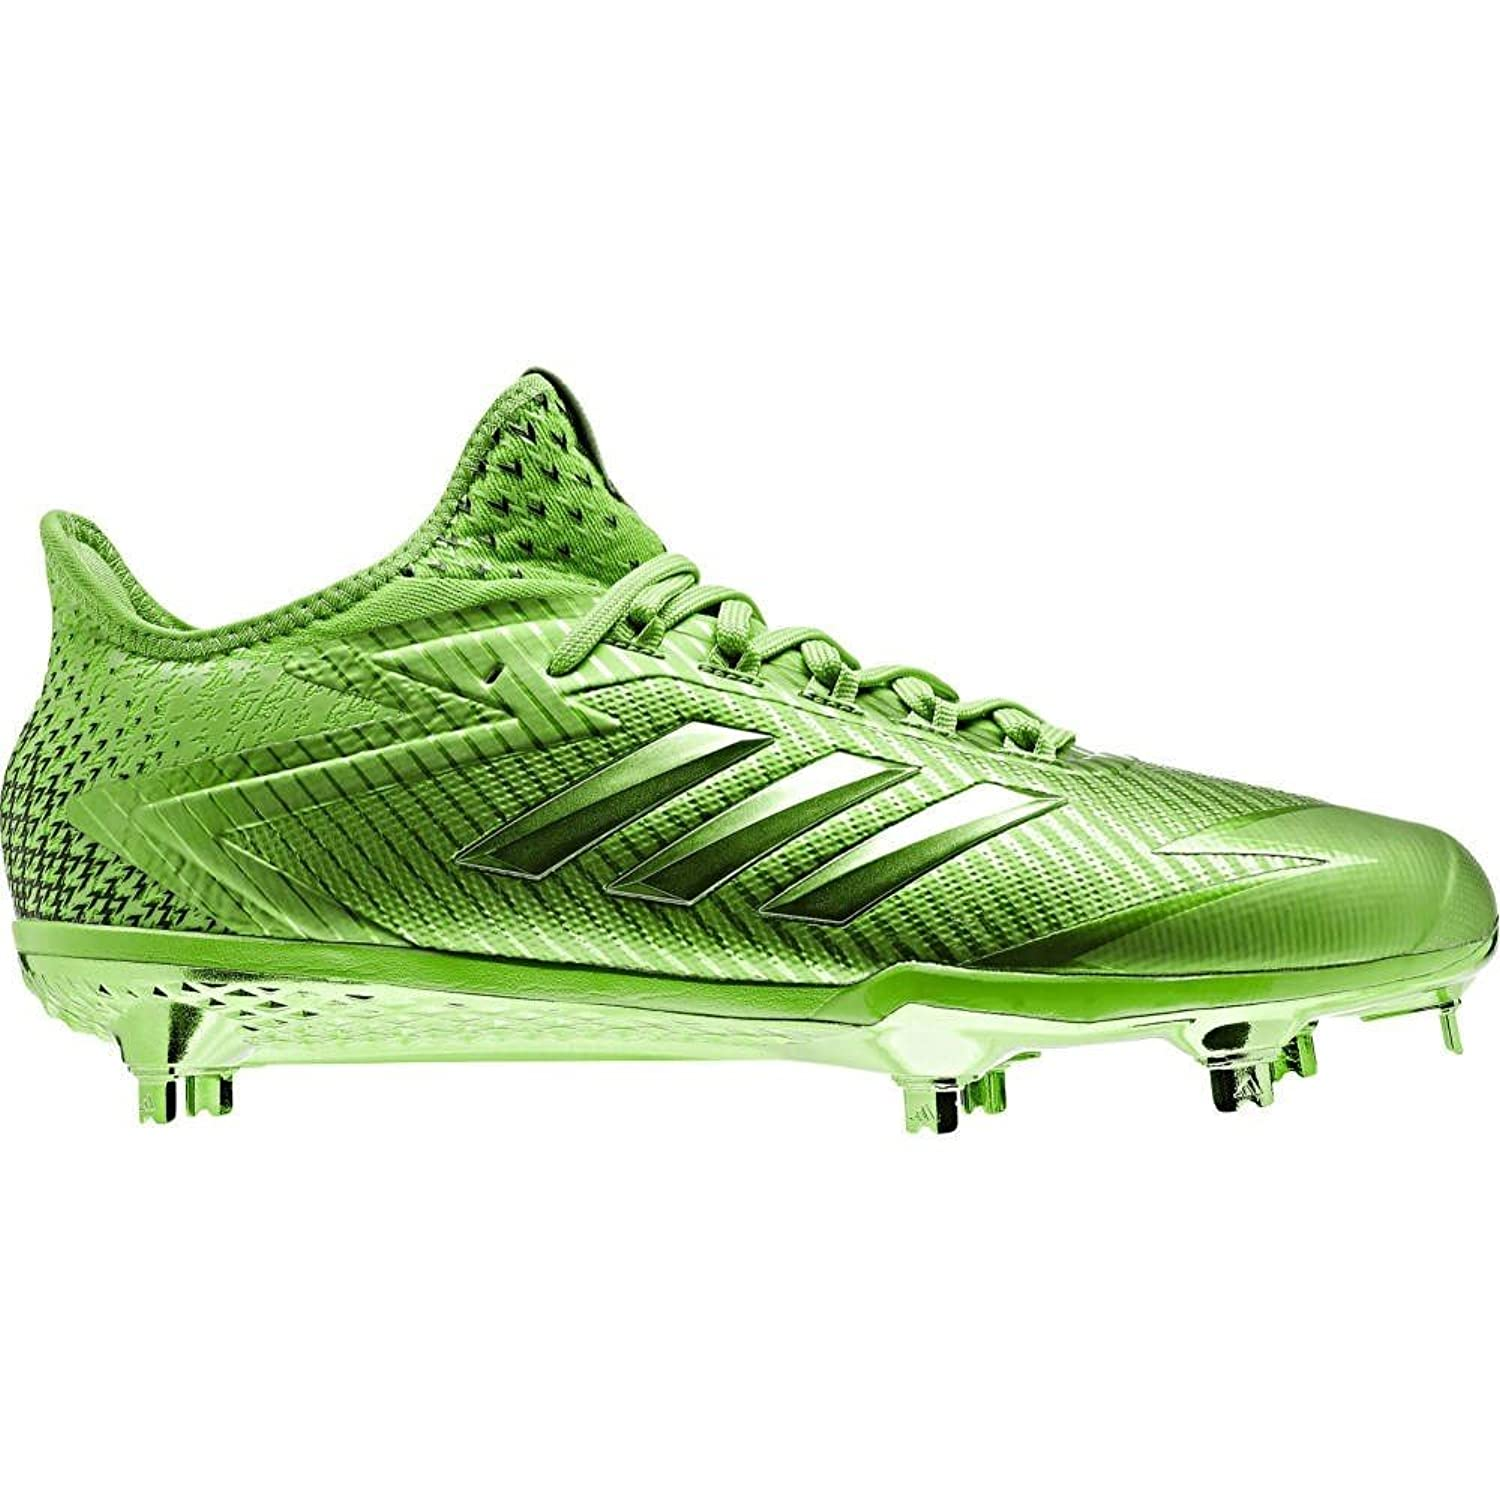 (アディダス) adidas メンズ 野球 シューズ靴 adidas adizero AfterBurner 4 Dip Baseball Cleats [並行輸入品] B077XZPYQX 14.0-Medium